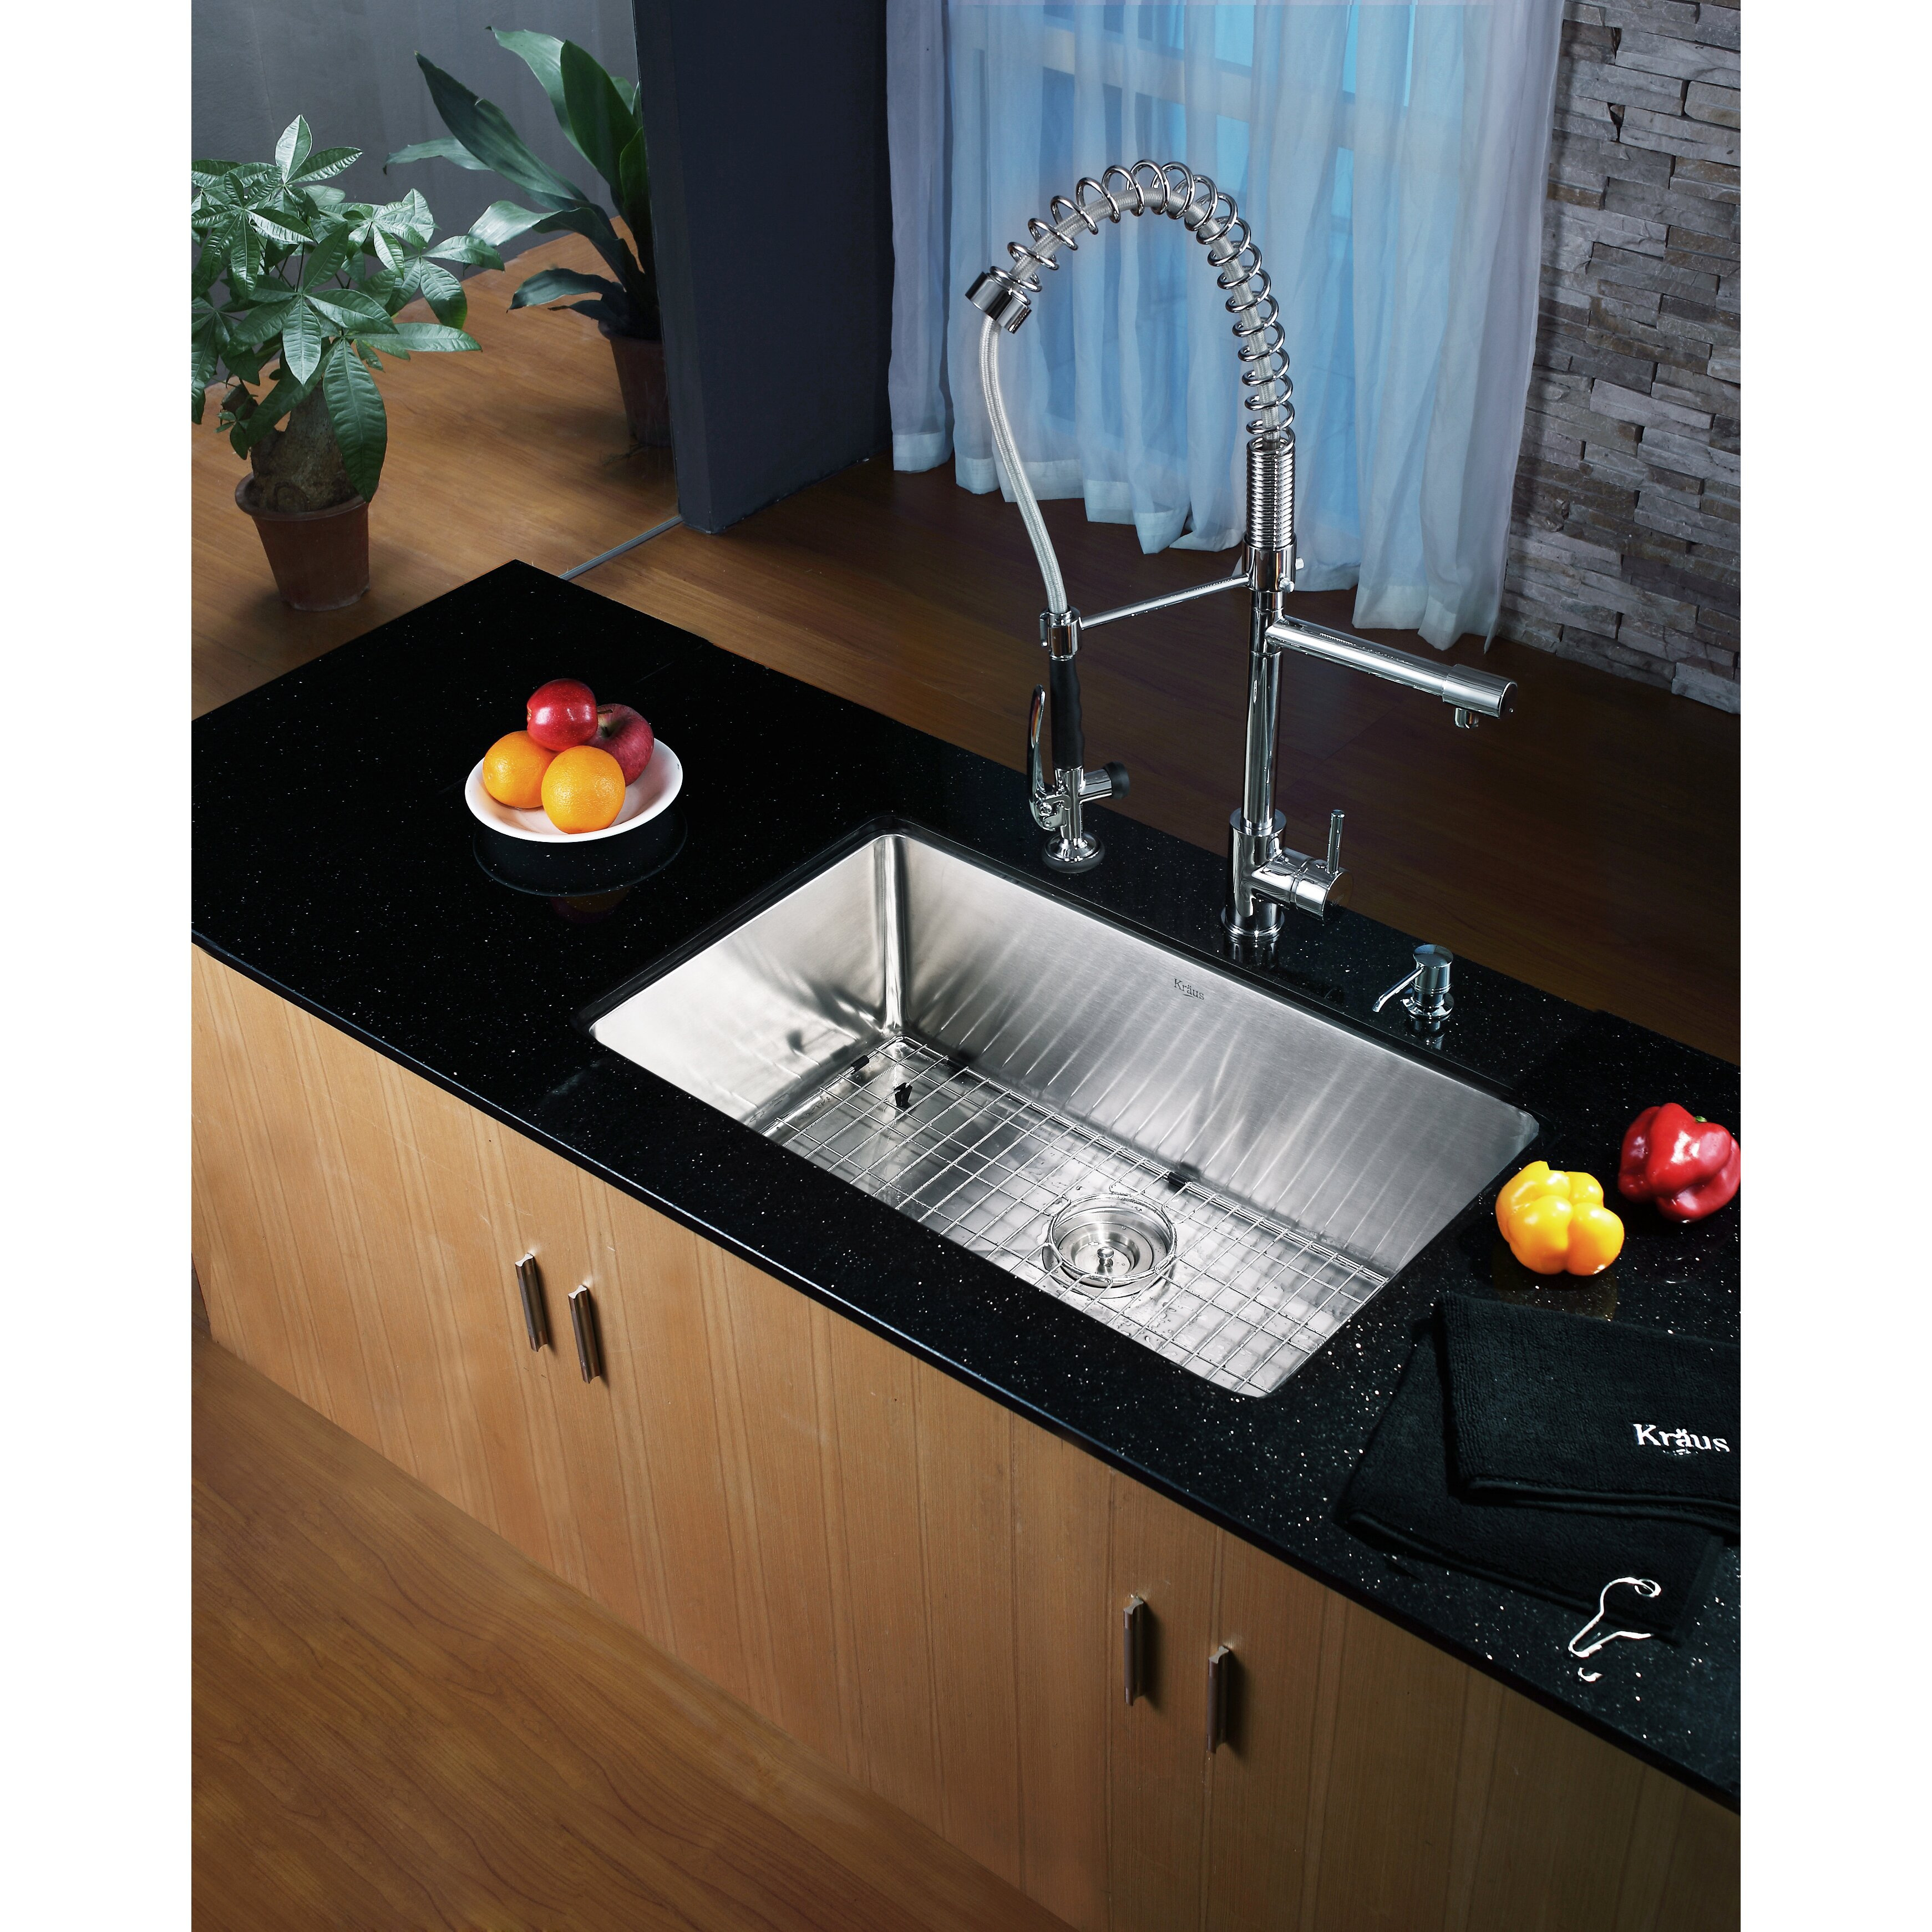 Kraus 30 X 16 Undermount Single Bowl Kitchen Sink With Faucet And Soap Dispenser Reviews